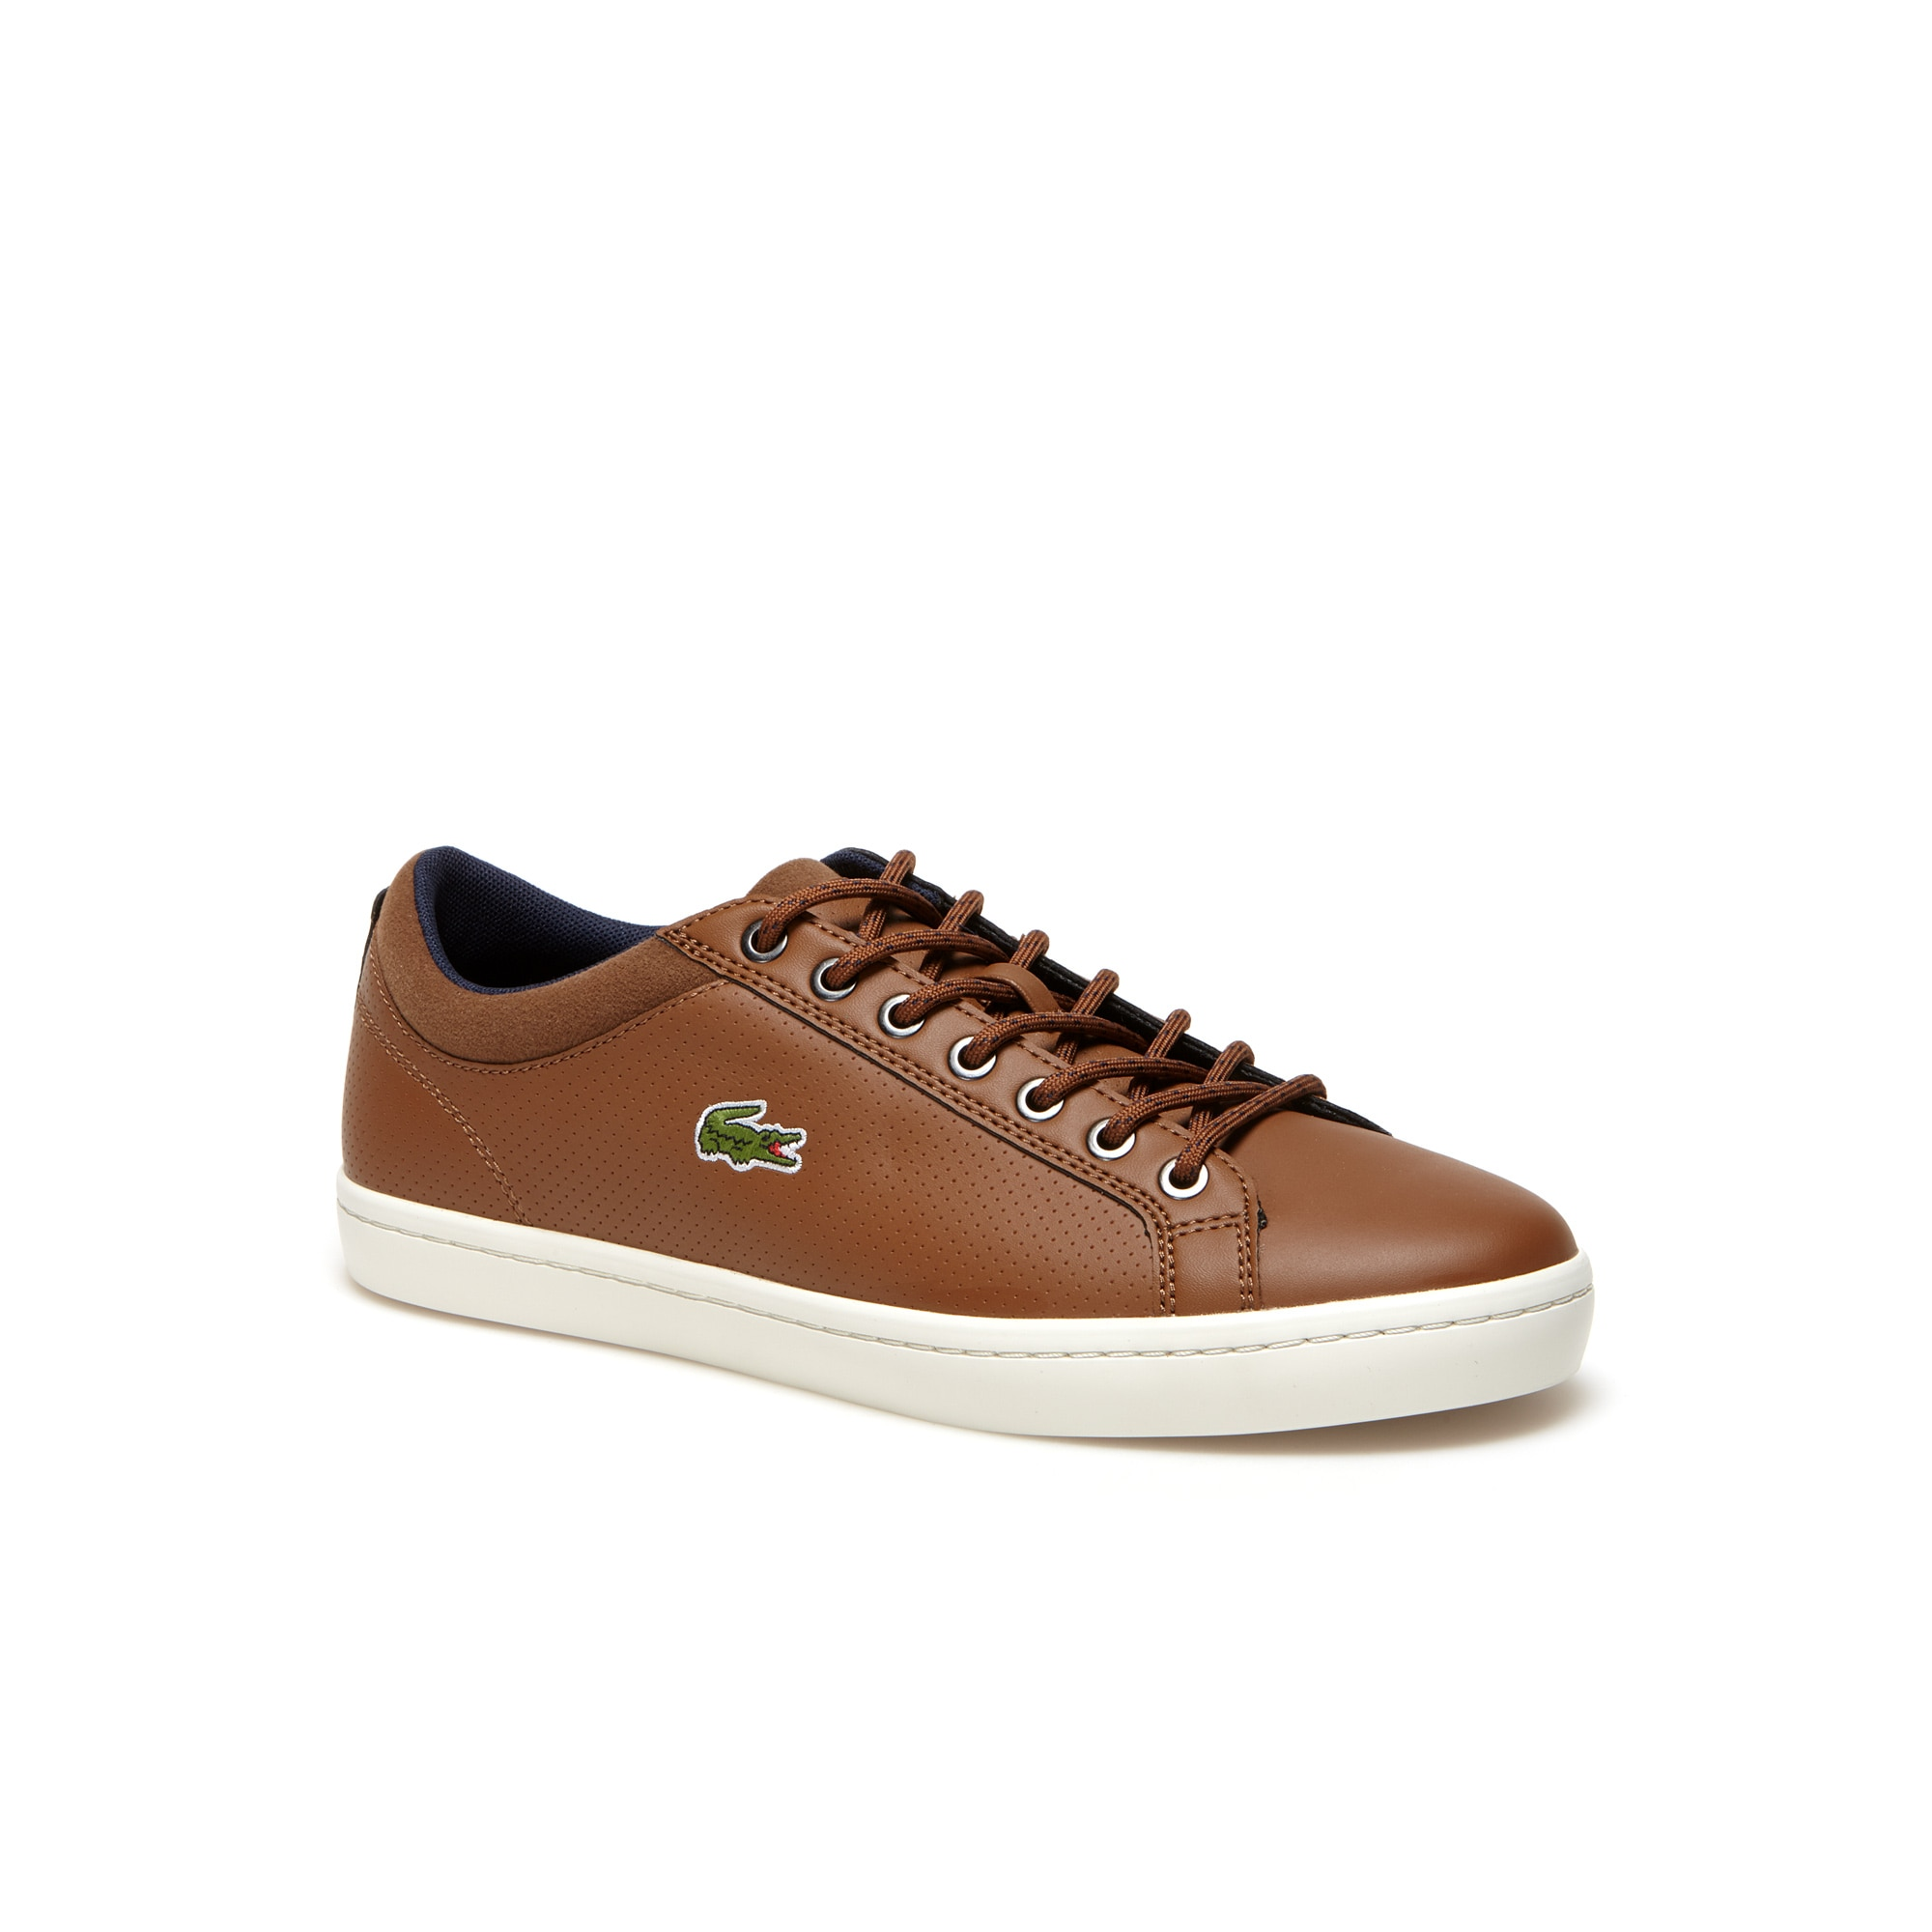 Men's Straightset SP Leather Sneakers